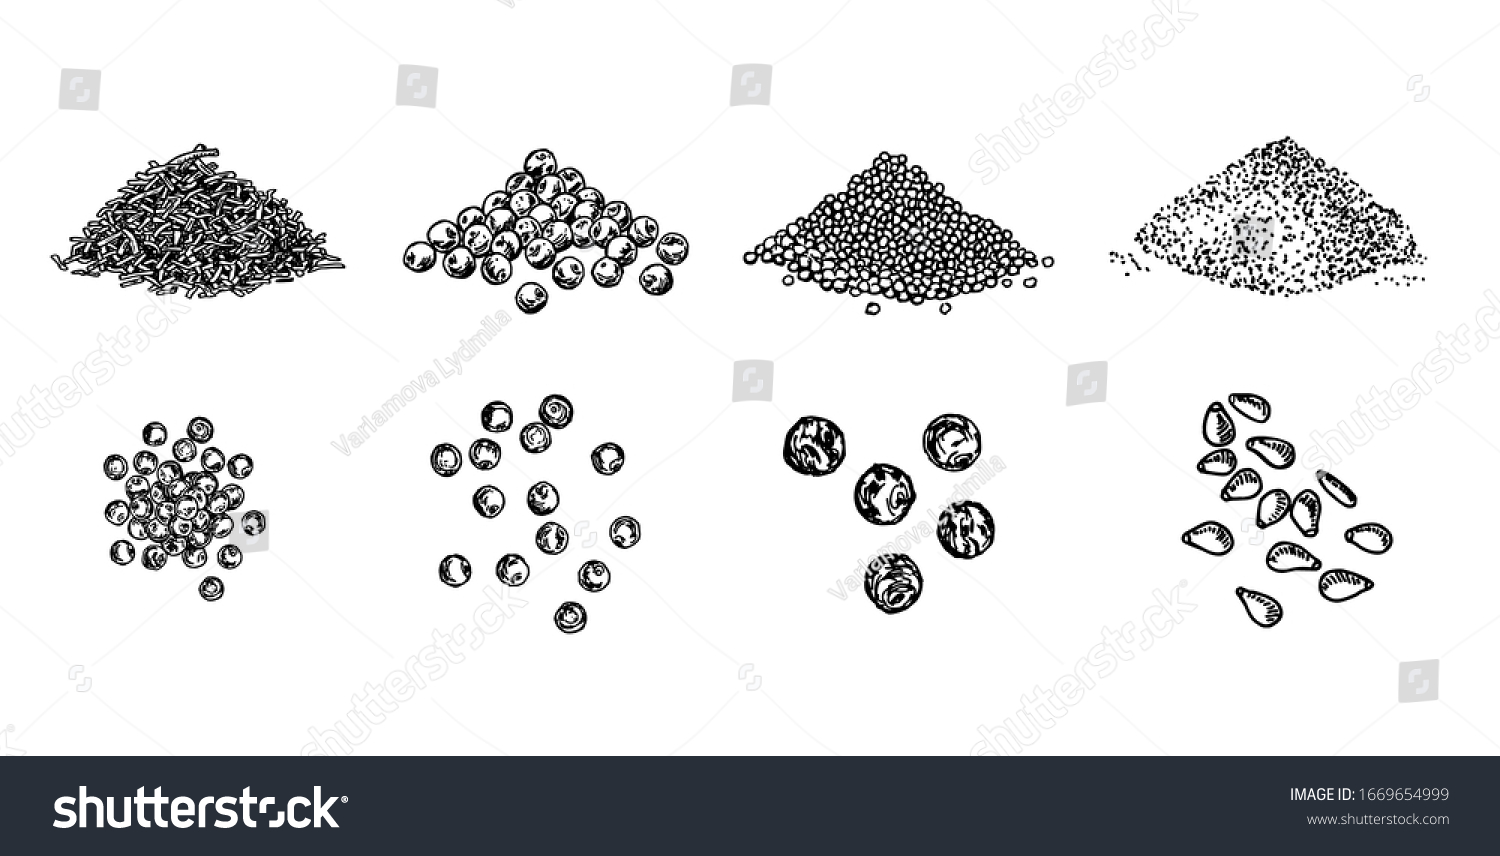 Piles of spices. Black pepper peas, sesame seeds, poppy seeds, caraway seeds. Spices set. Natural seasoning and cooking ingredient. Vector line art illustration on white background #1669654999